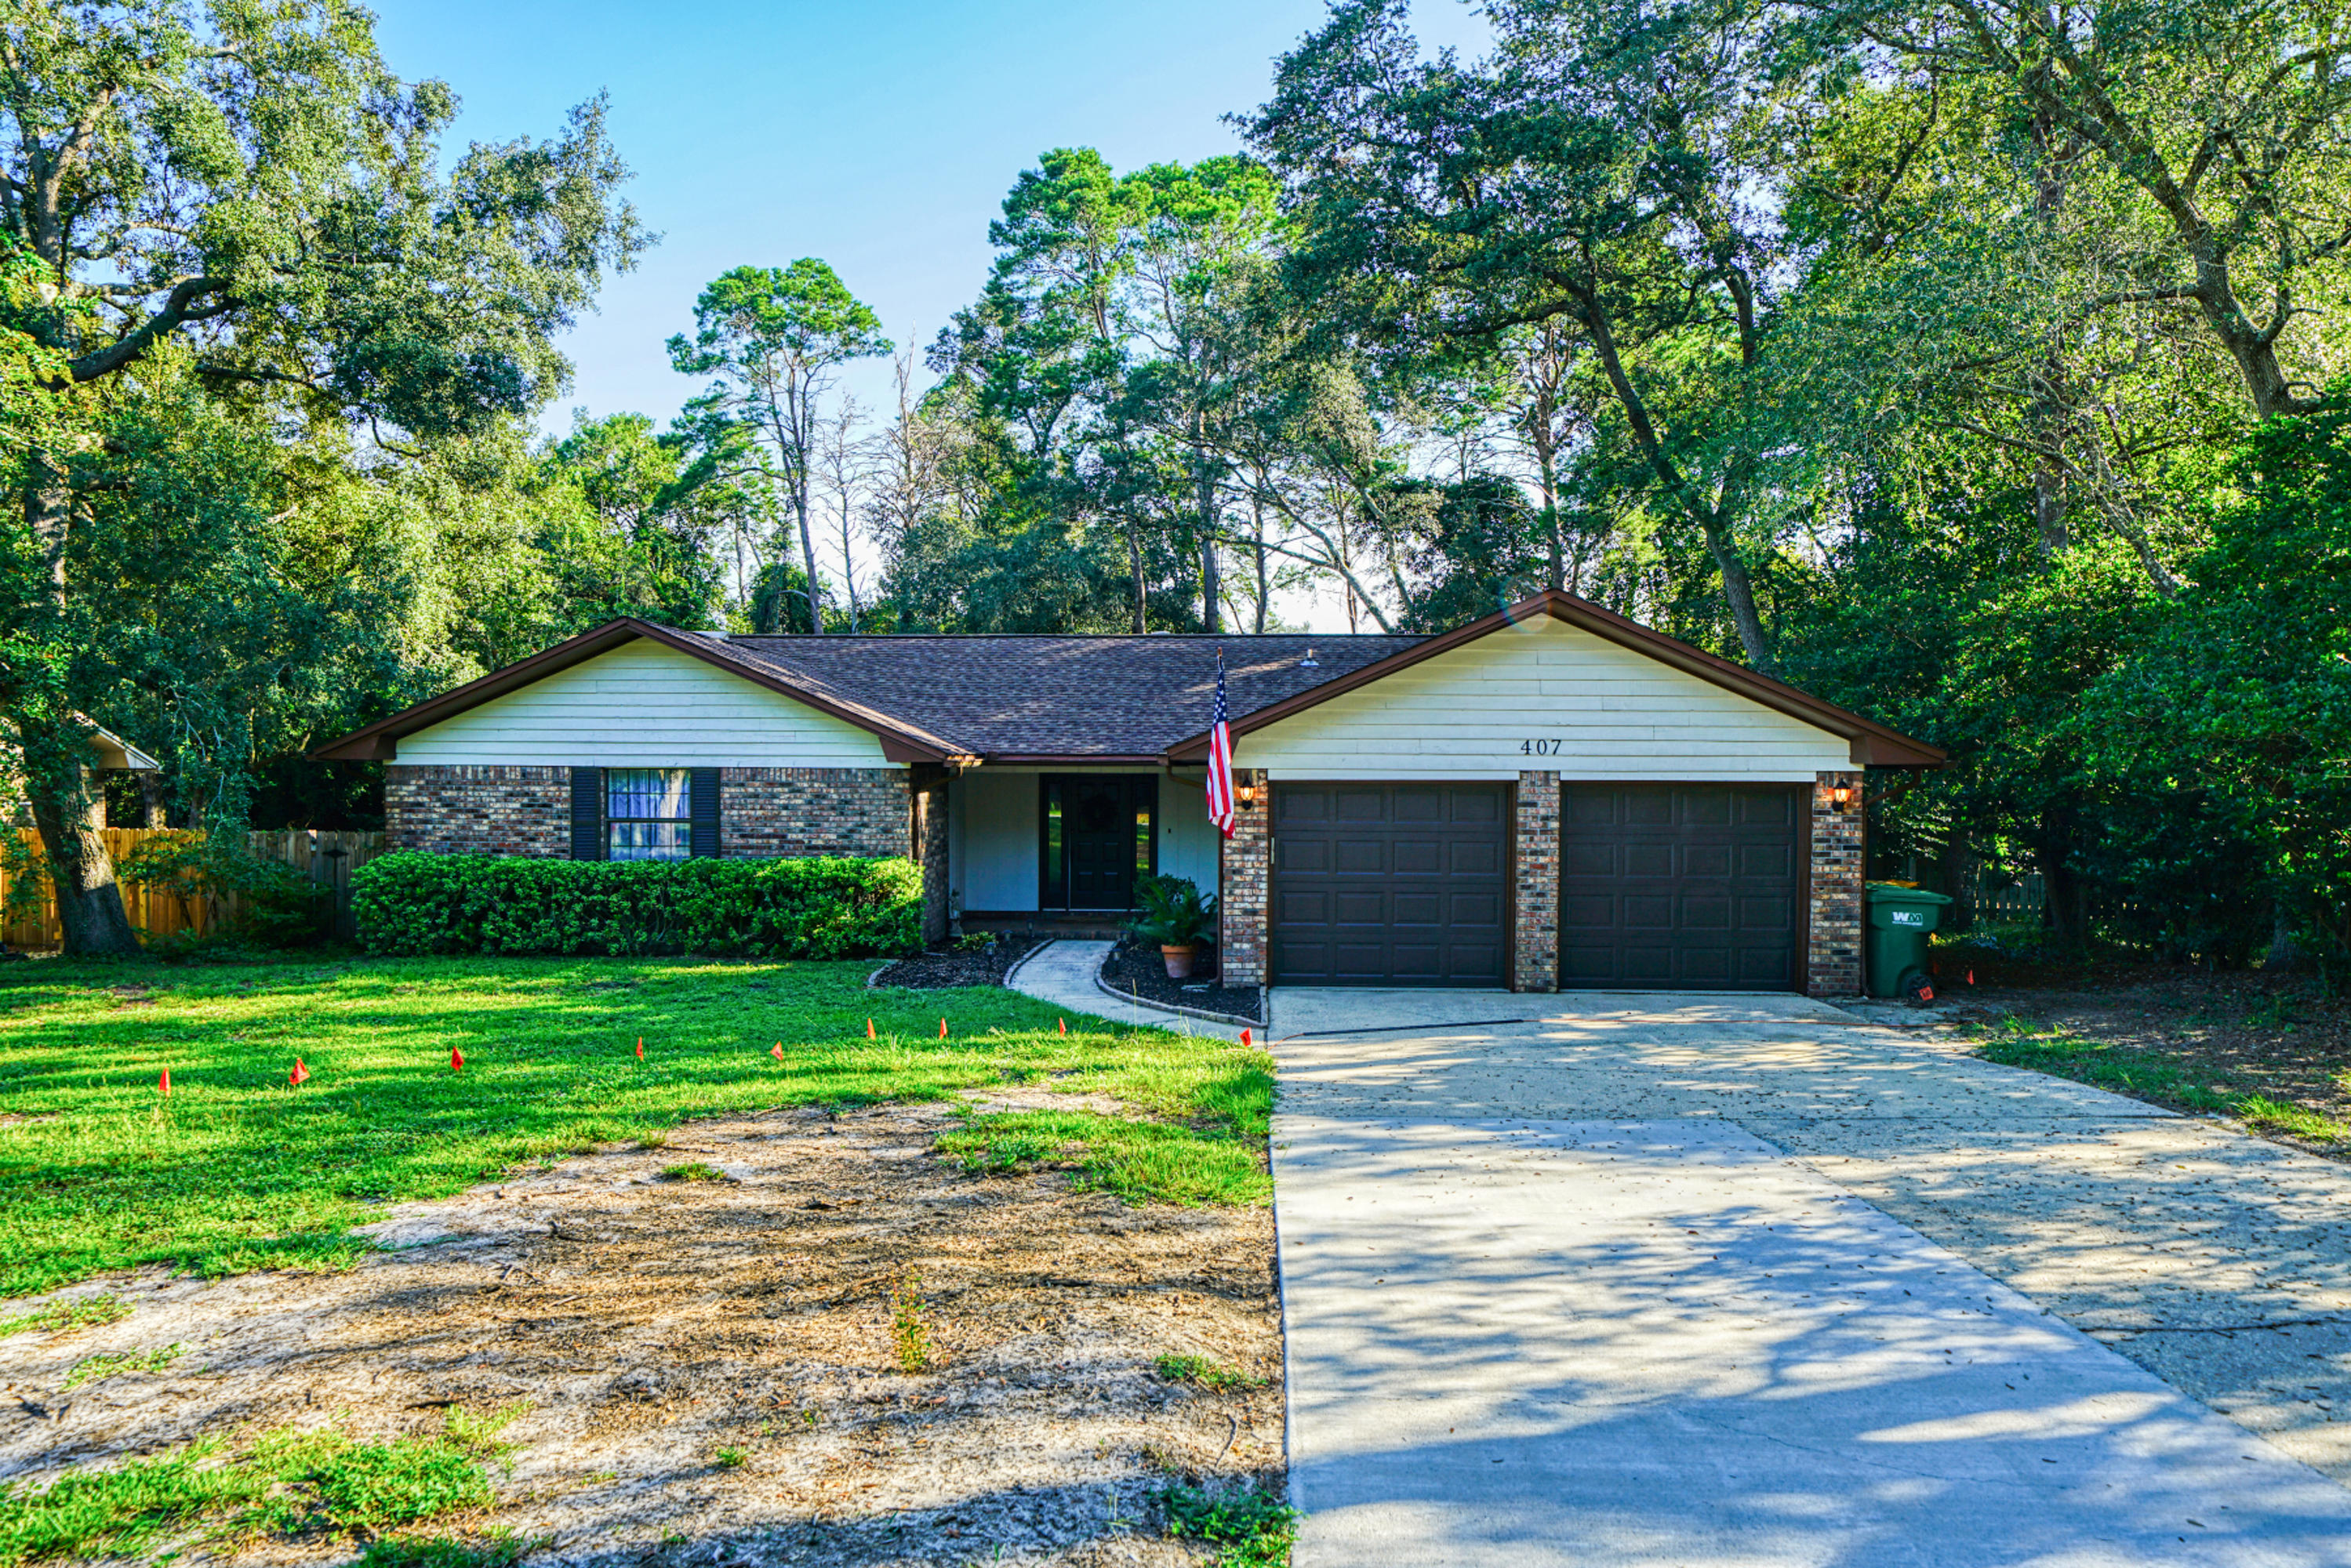 Photo of home for sale at 407 Martinique, Niceville FL